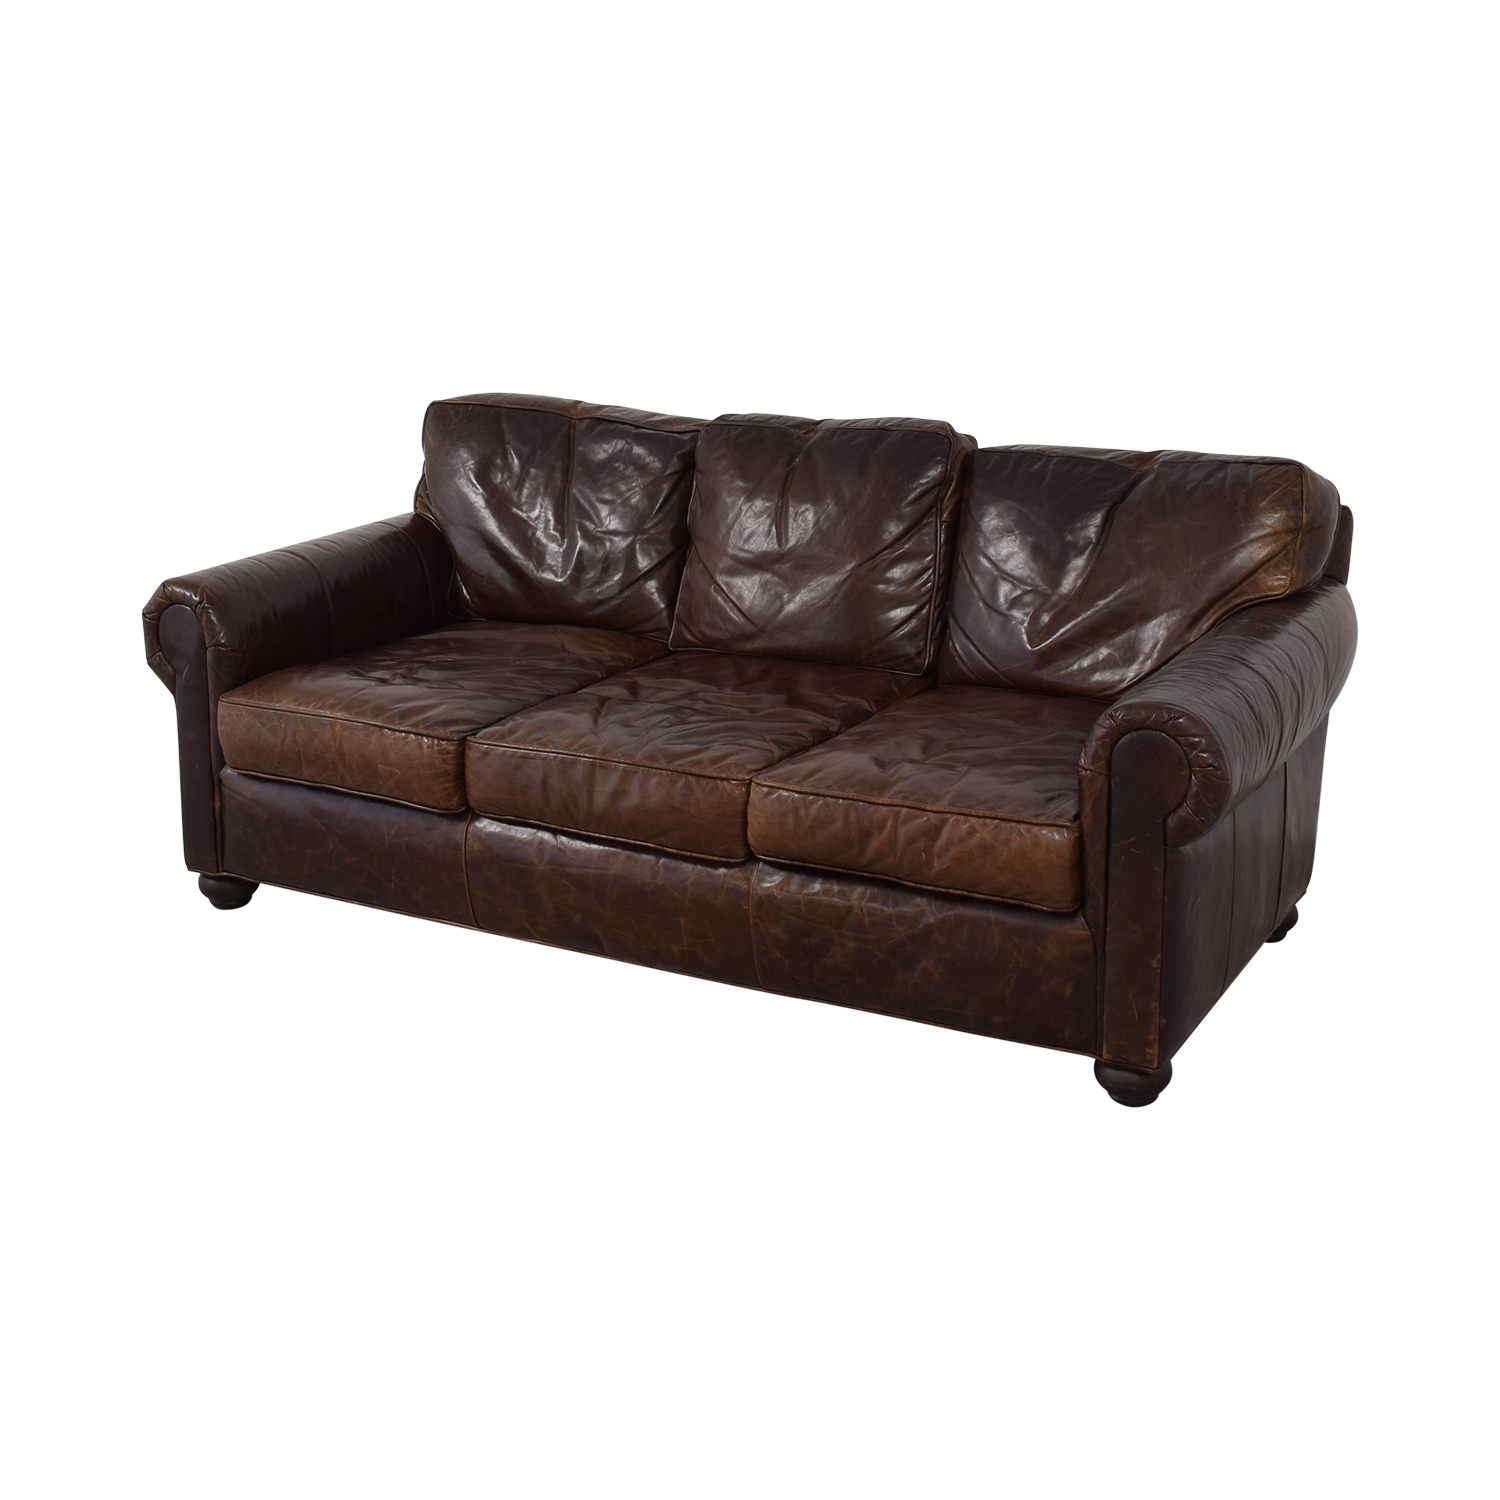 71% OFF   Restoration Hardware Restoration Hardware Lancaster Leather Sofa  / Sofas